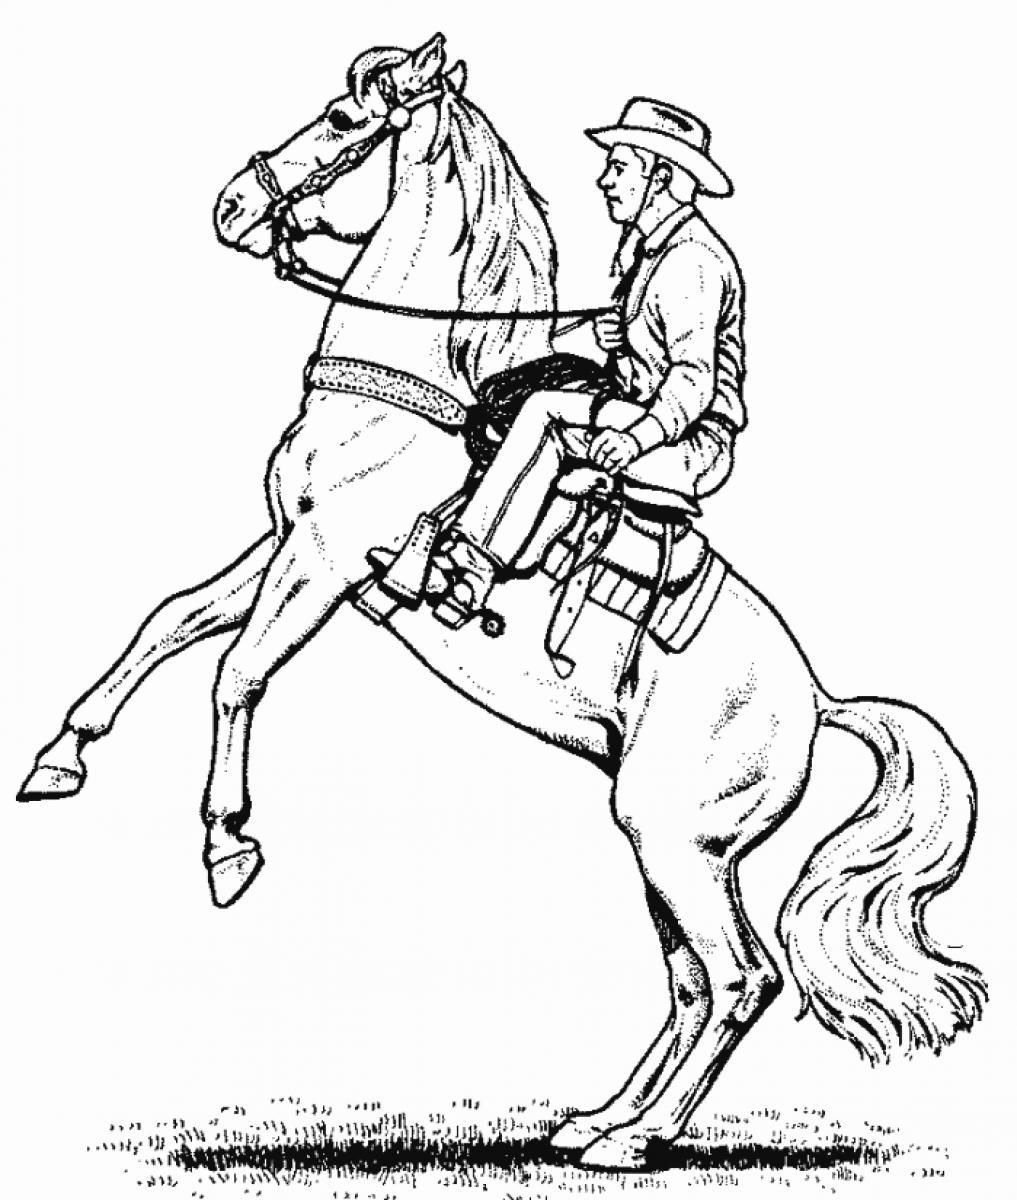 Free Cowboy Coloring Pages With Coloring Cowboy Coloring Pages Pages Online Horse Coloring Pages Horse Coloring Coloring Pages